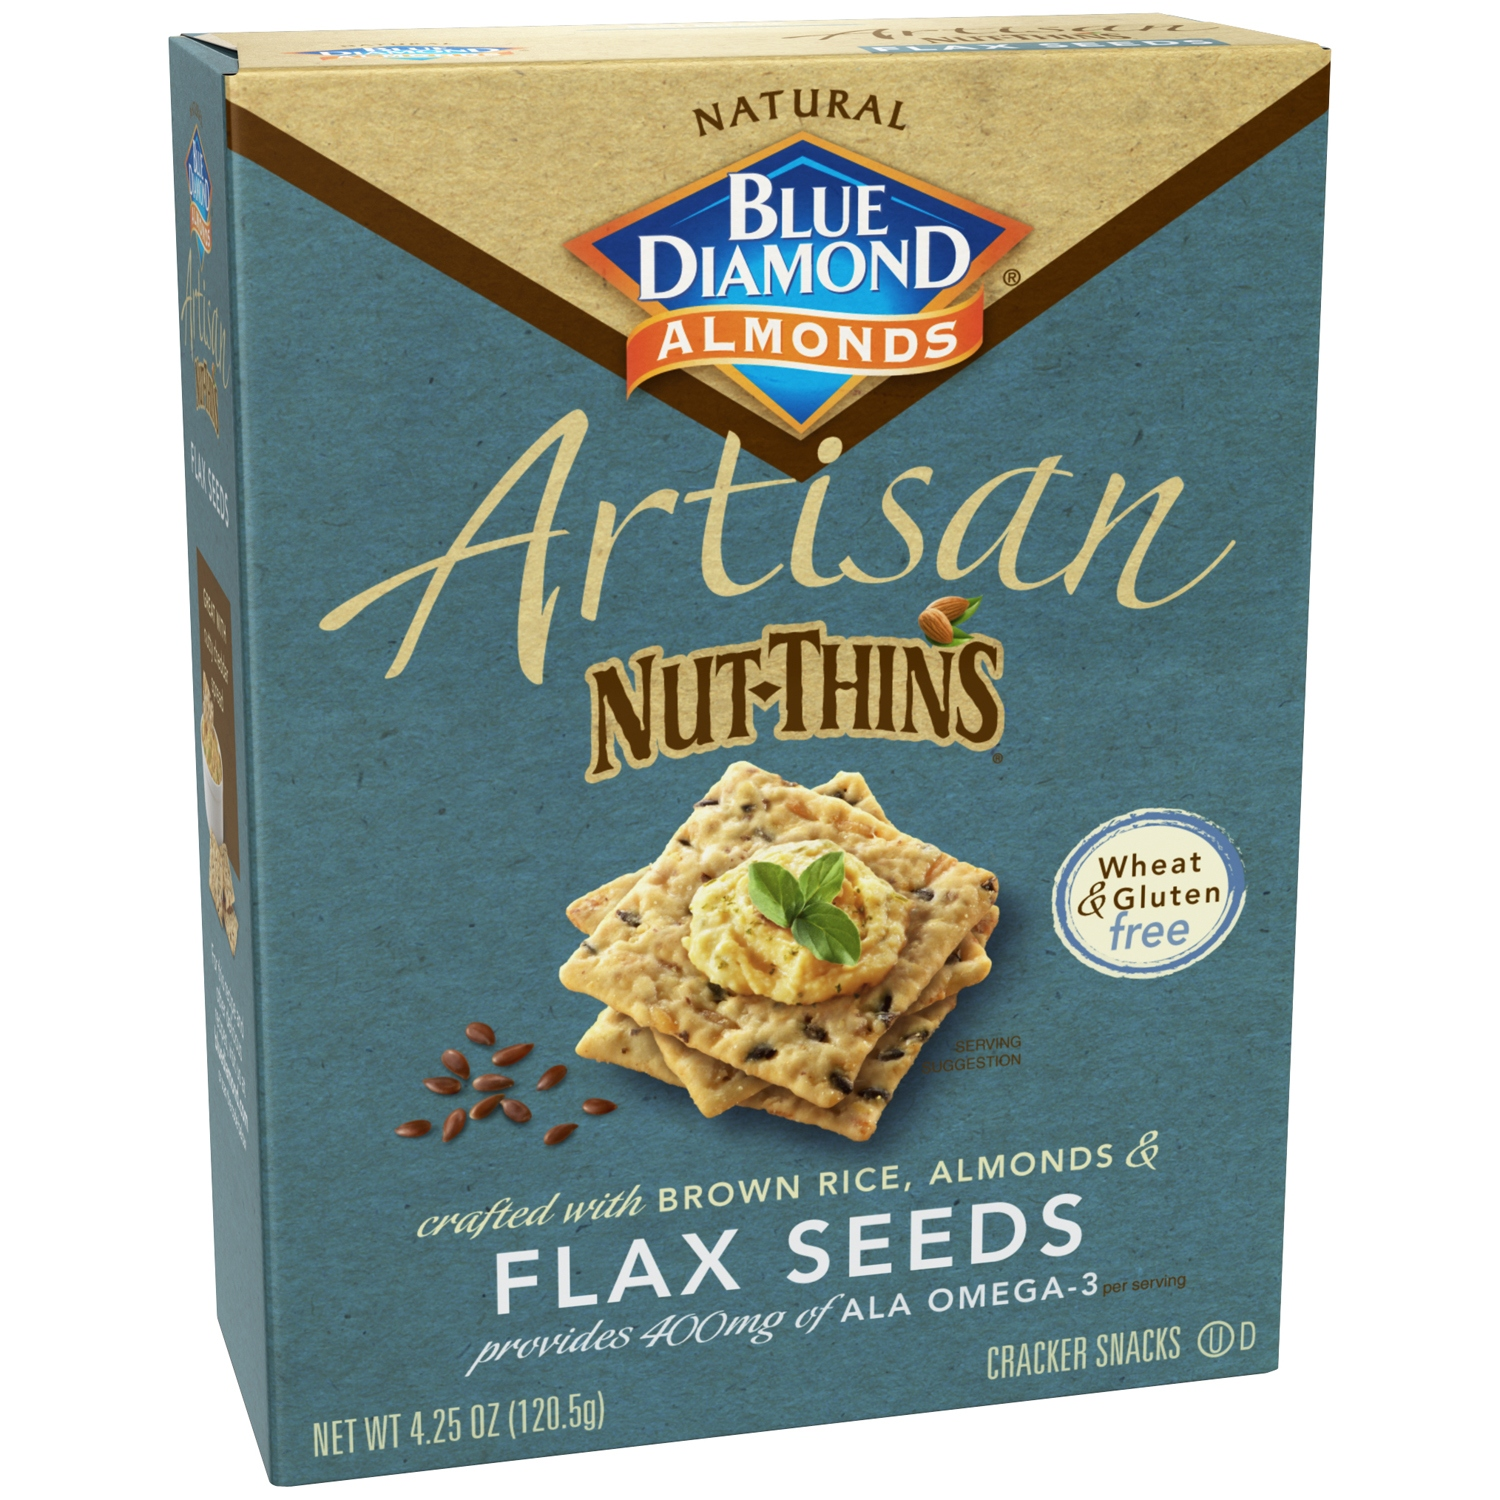 Artisan Nut-Thins® Brown Rice, Almonds & Flax Seeds Cracker Snacks 4.25 oz. Box